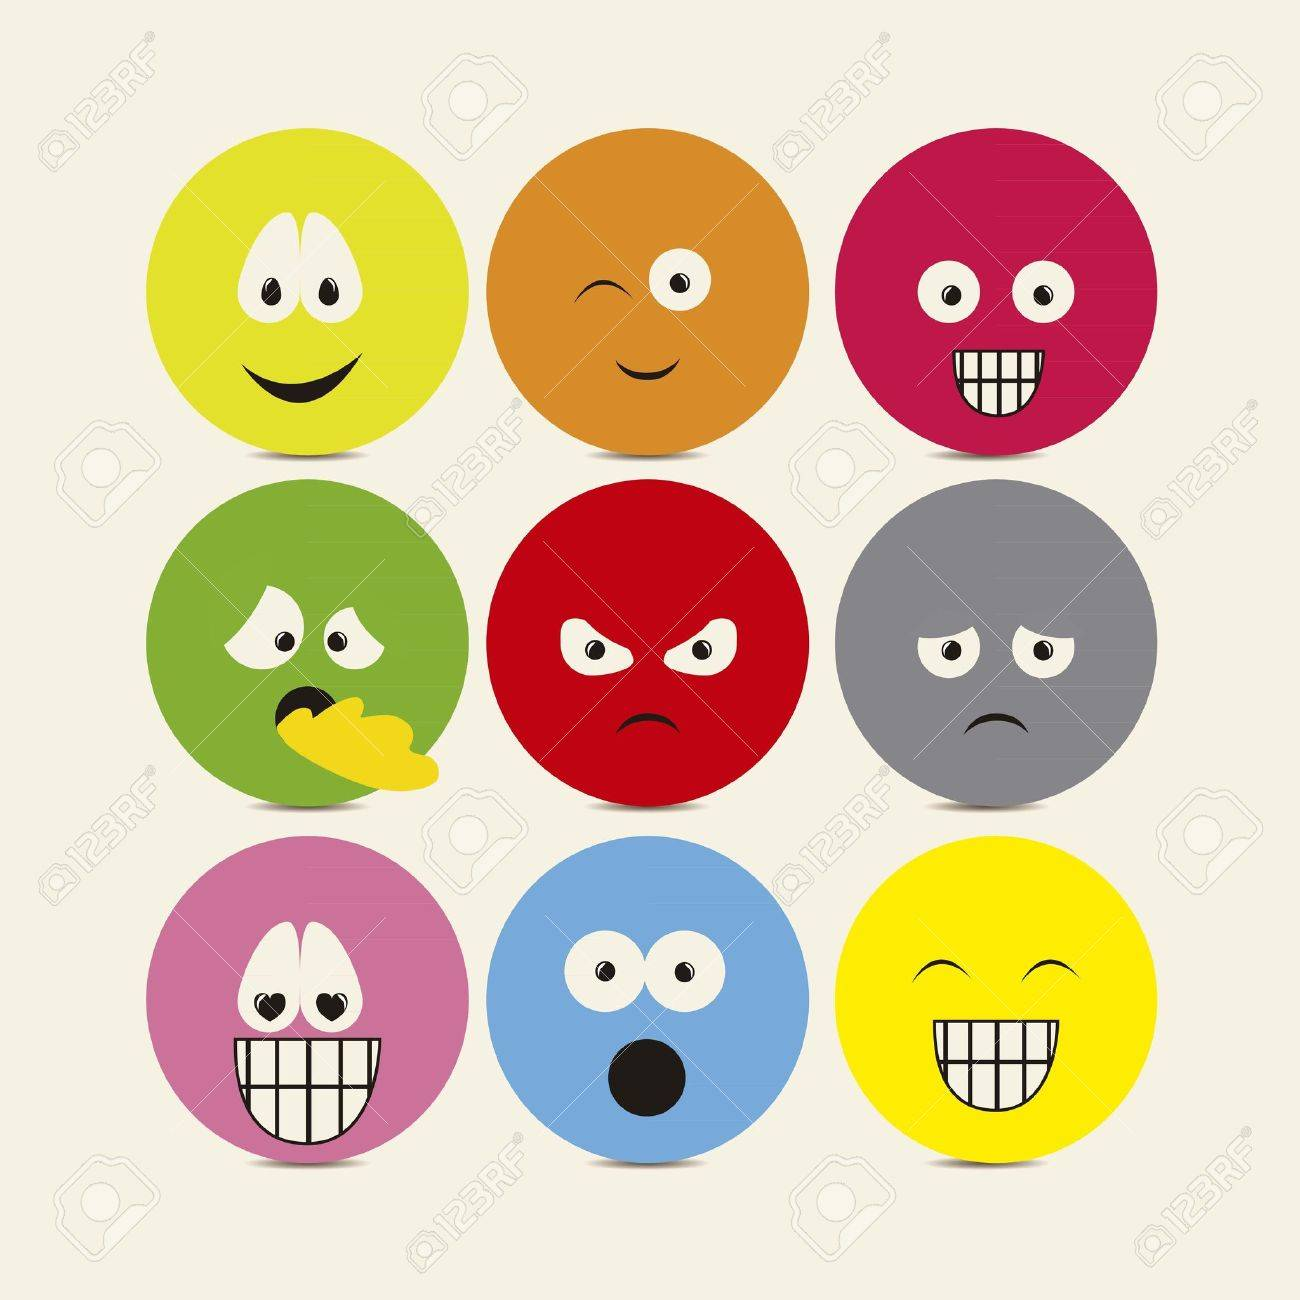 Illustration of expressions icons, with different gestures, vector illustration Stock Vector - 16183873